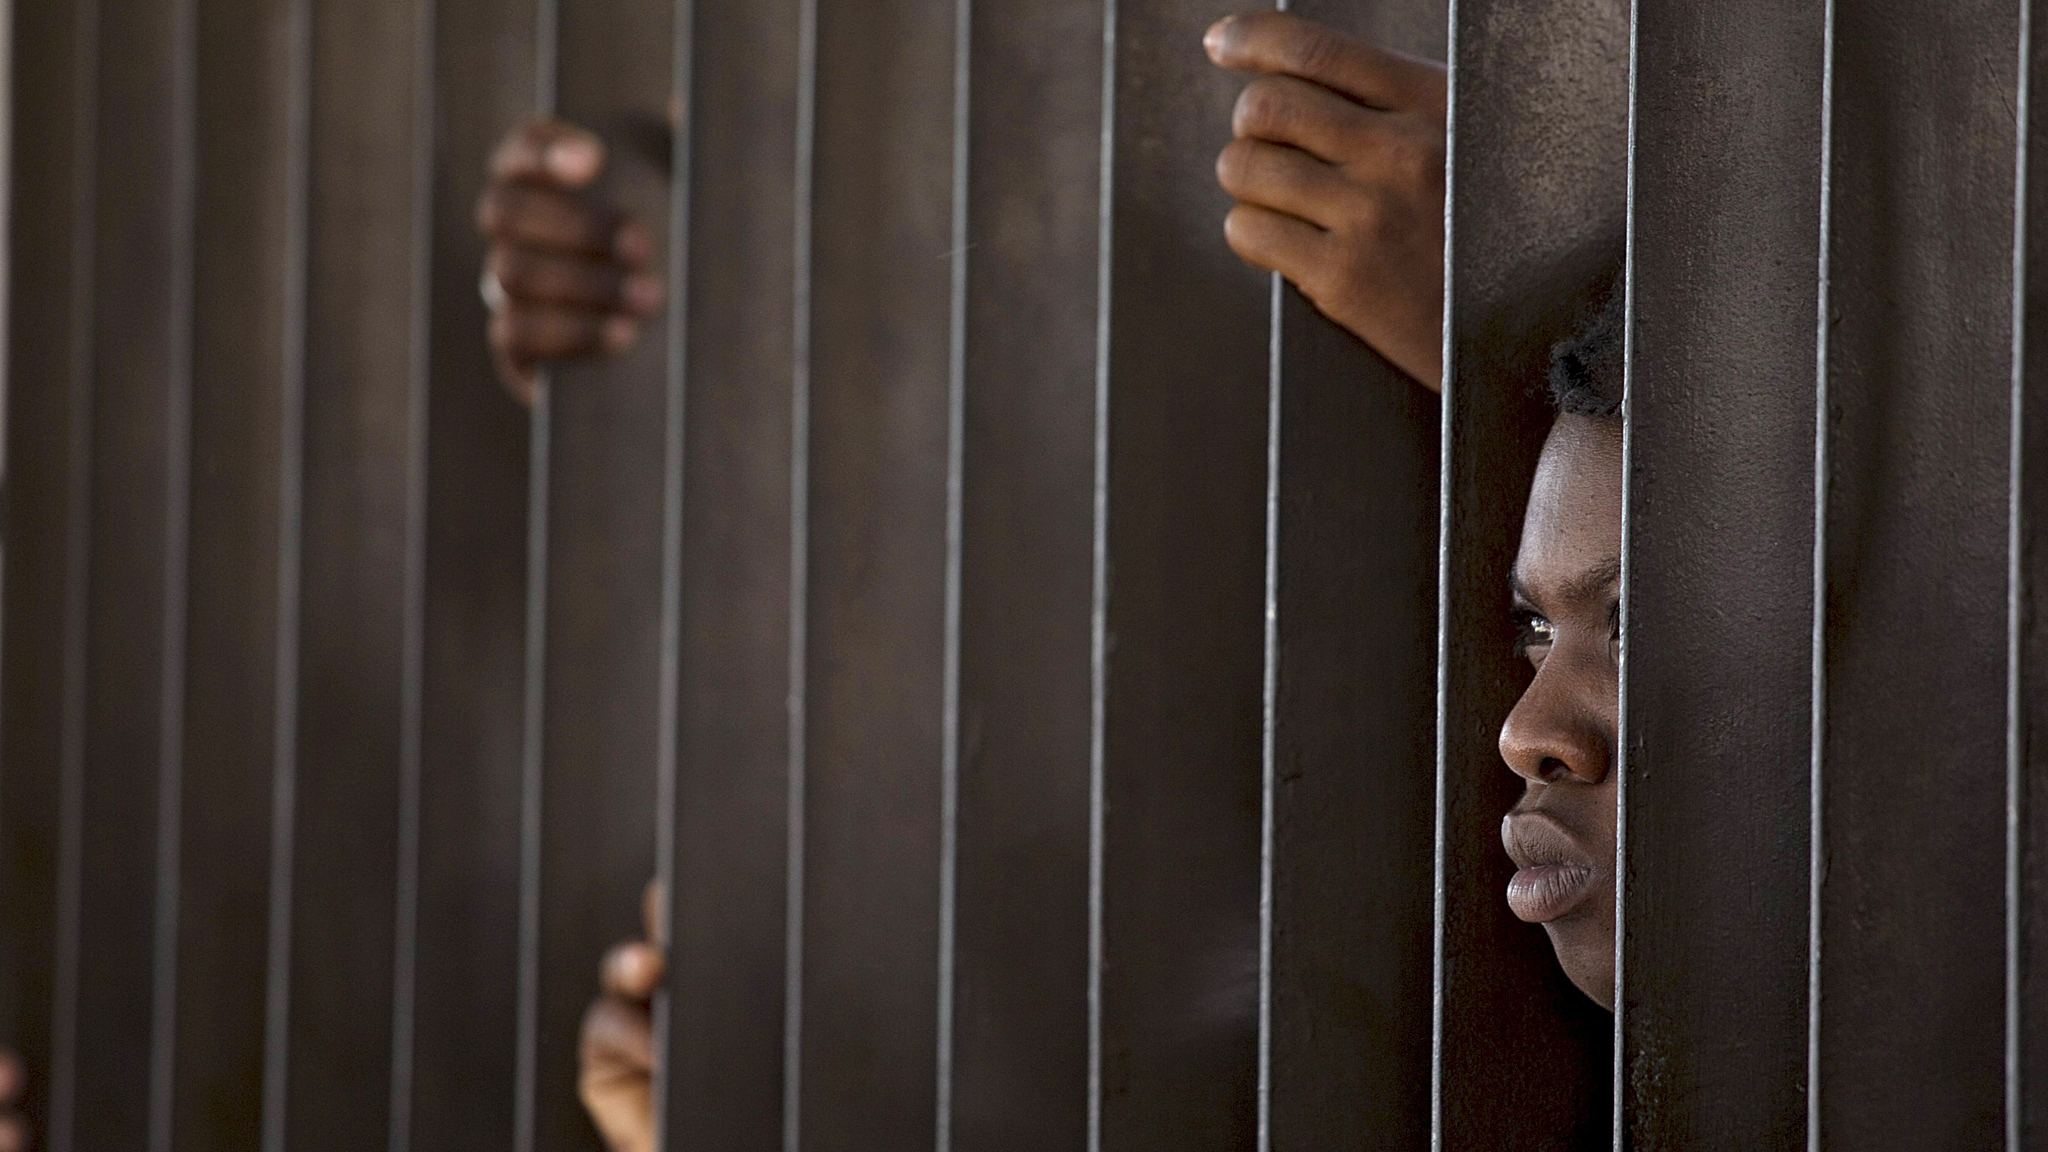 "A Haitian woman peeks through a fence surrounding the Ministry of Interior and Police while waiting to register in Santo Domingo...A Haitian woman peeks through a fence surrounding the Ministry of Interior and Police while waiting to register in Santo Domingo, June 16, 2015. The deadline expires Wednesday night for tens of thousands of undocumented Haitians born in the Dominican Republic under a controversial new immigration law that has aroused international concern from the United Nations and human rights groups. Dominican officials have said those who fail to registar under a ""Regularization Plan"" will be deported within 45 days. REUTERS/Ricardo Rojas        TPX IMAGES OF THE DAY"